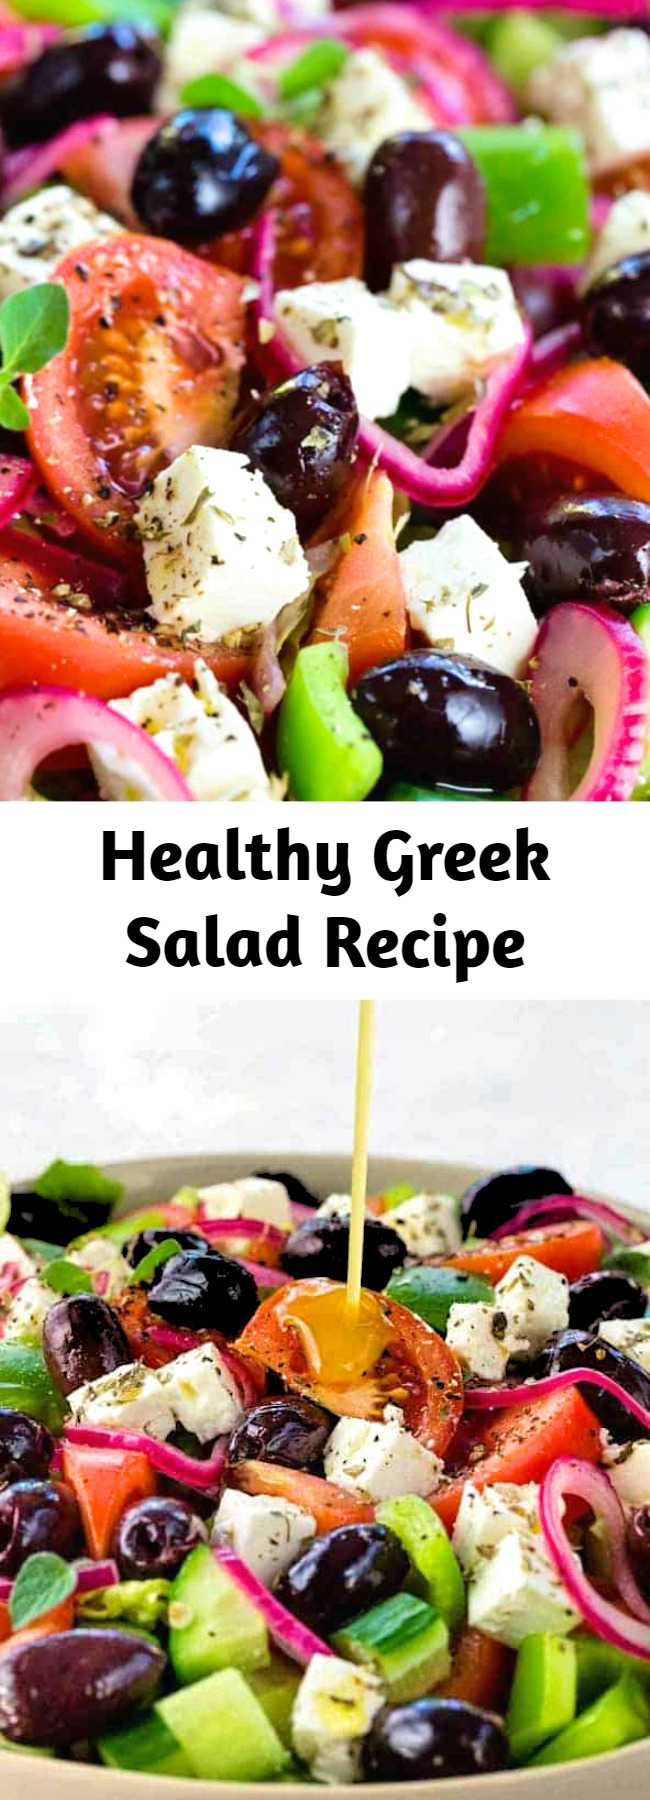 Healthy Greek Salad Recipe - This Greek salad is a healthy vegetable packed appetizer drizzled with a homemade red wine vinegar dressing. Each serving contains creamy feta cheese, kalamata olives, tomatoes, bell peppers, cucumbers and red onion. #greeksalad #salad